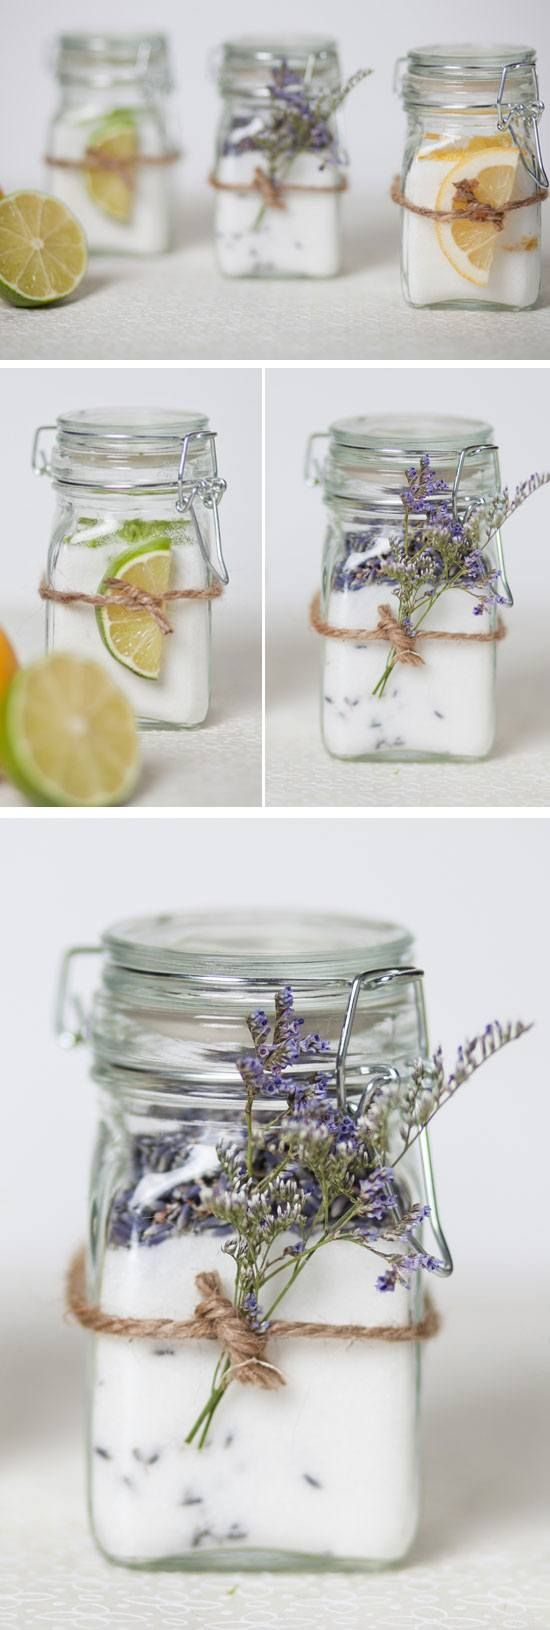 infused sugar jars diy bridal shower party ideas on a budget